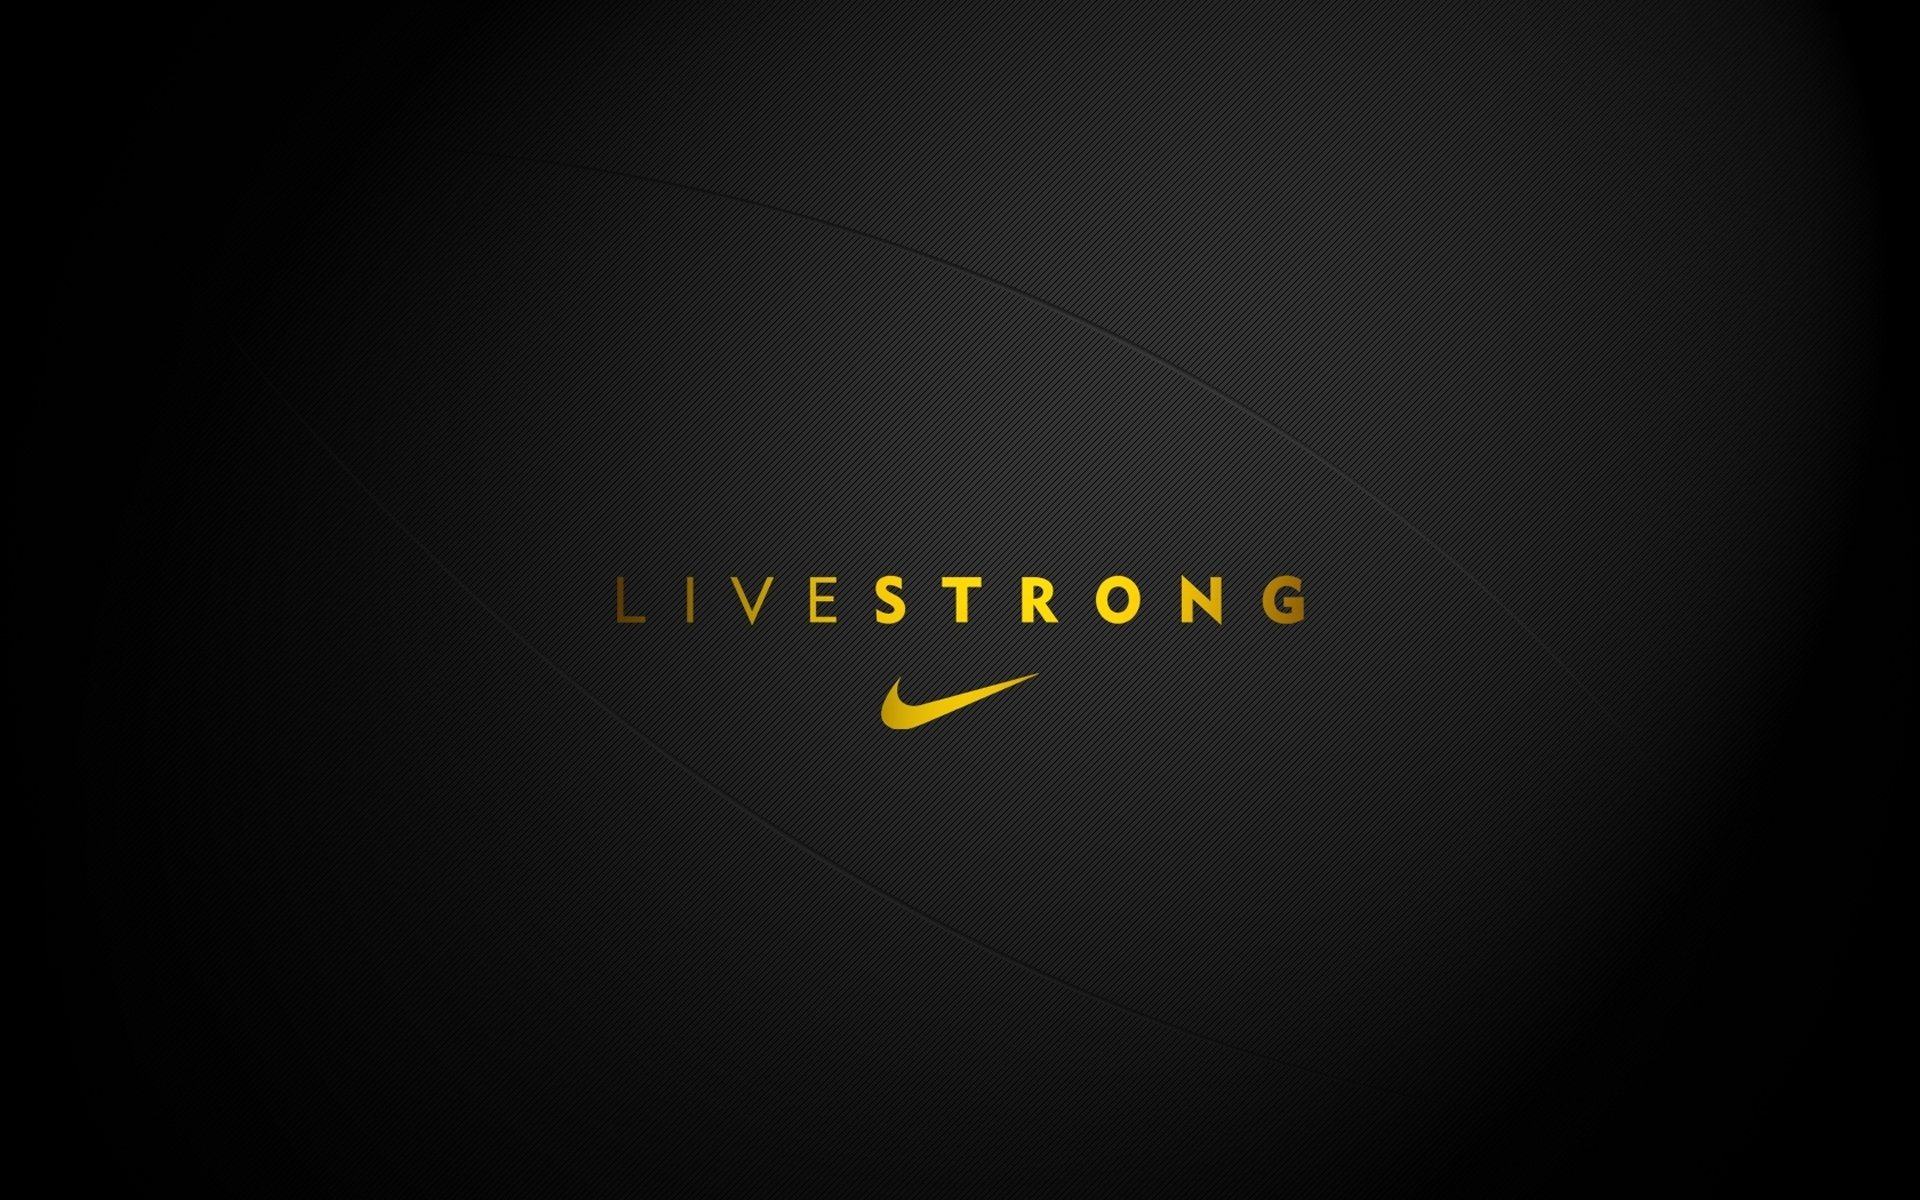 77 ] Nike Wallpaper For Laptop On WallpaperSafari